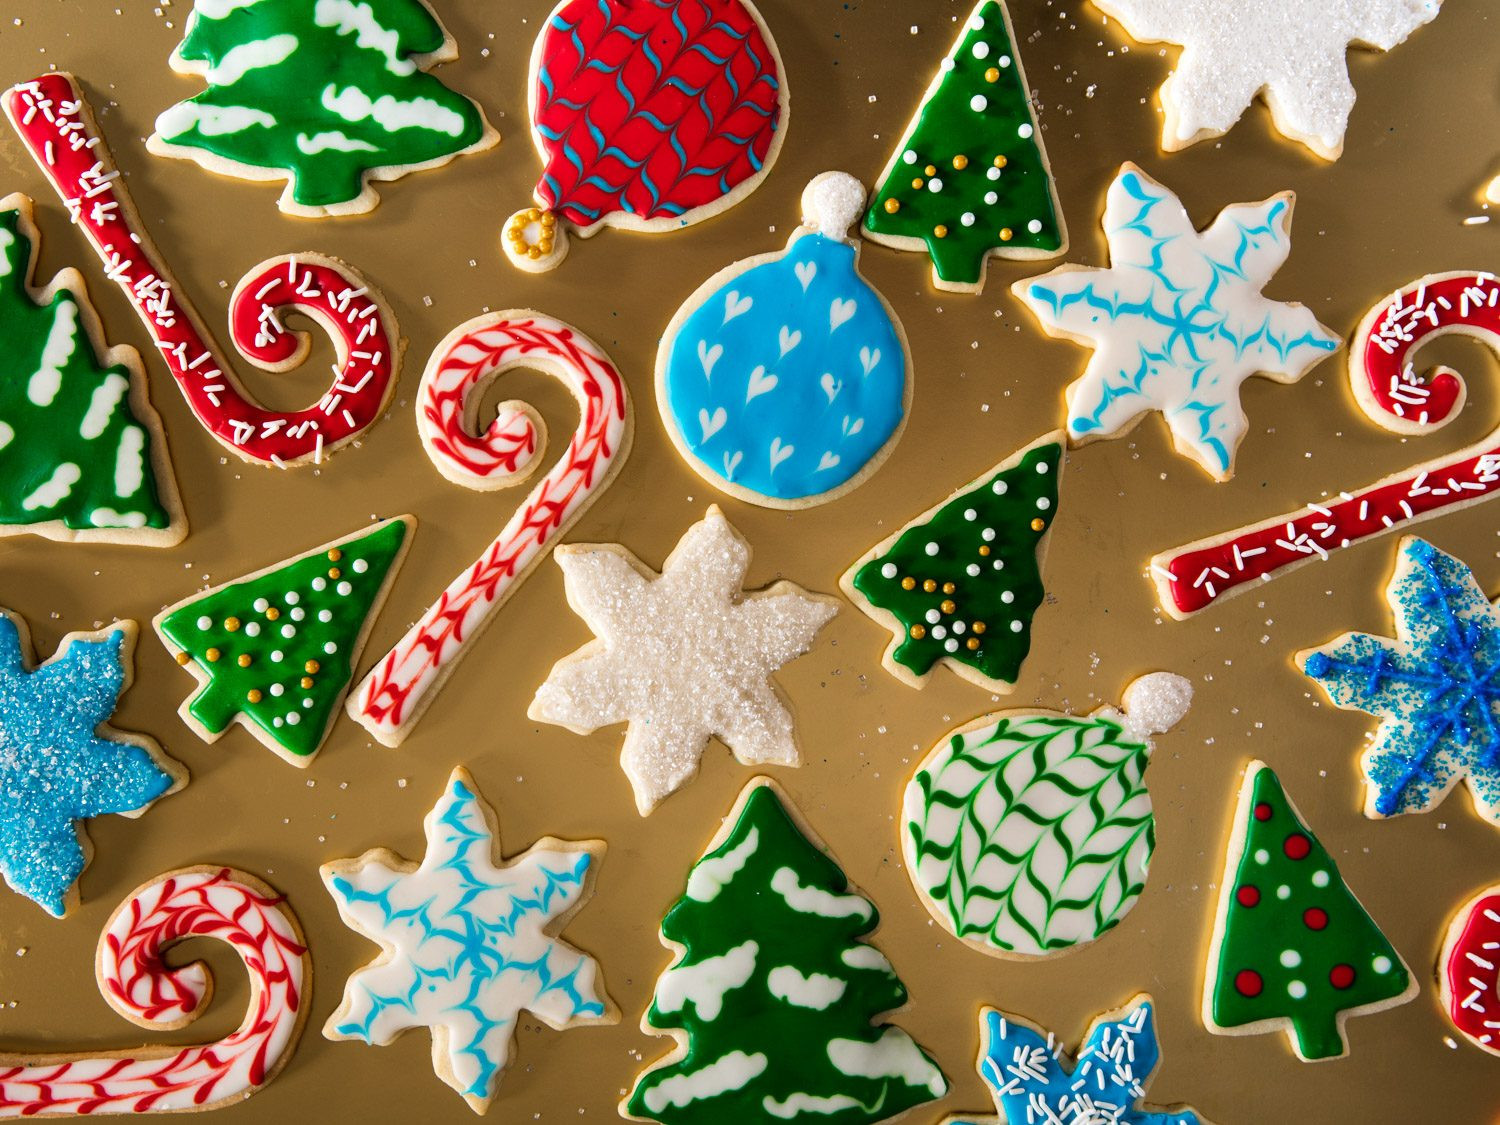 Decorating Christmas Cookies  A Royal Icing Tutorial Decorate Christmas Cookies Like a